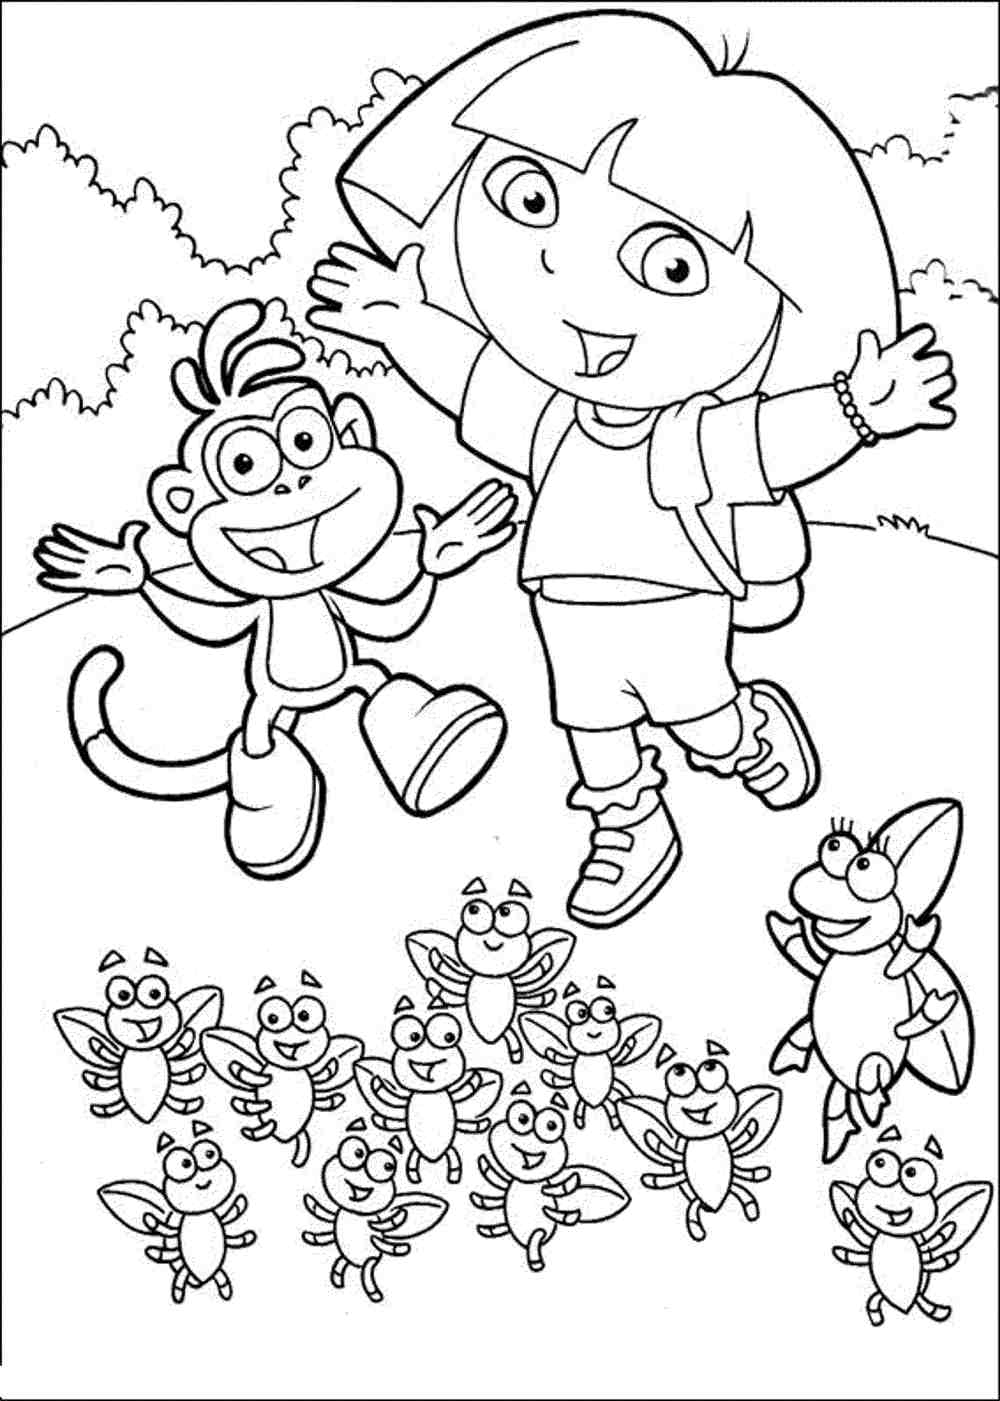 free printable dora coloring pages free printable dora coloring pages for kids cool2bkids pages free dora printable coloring